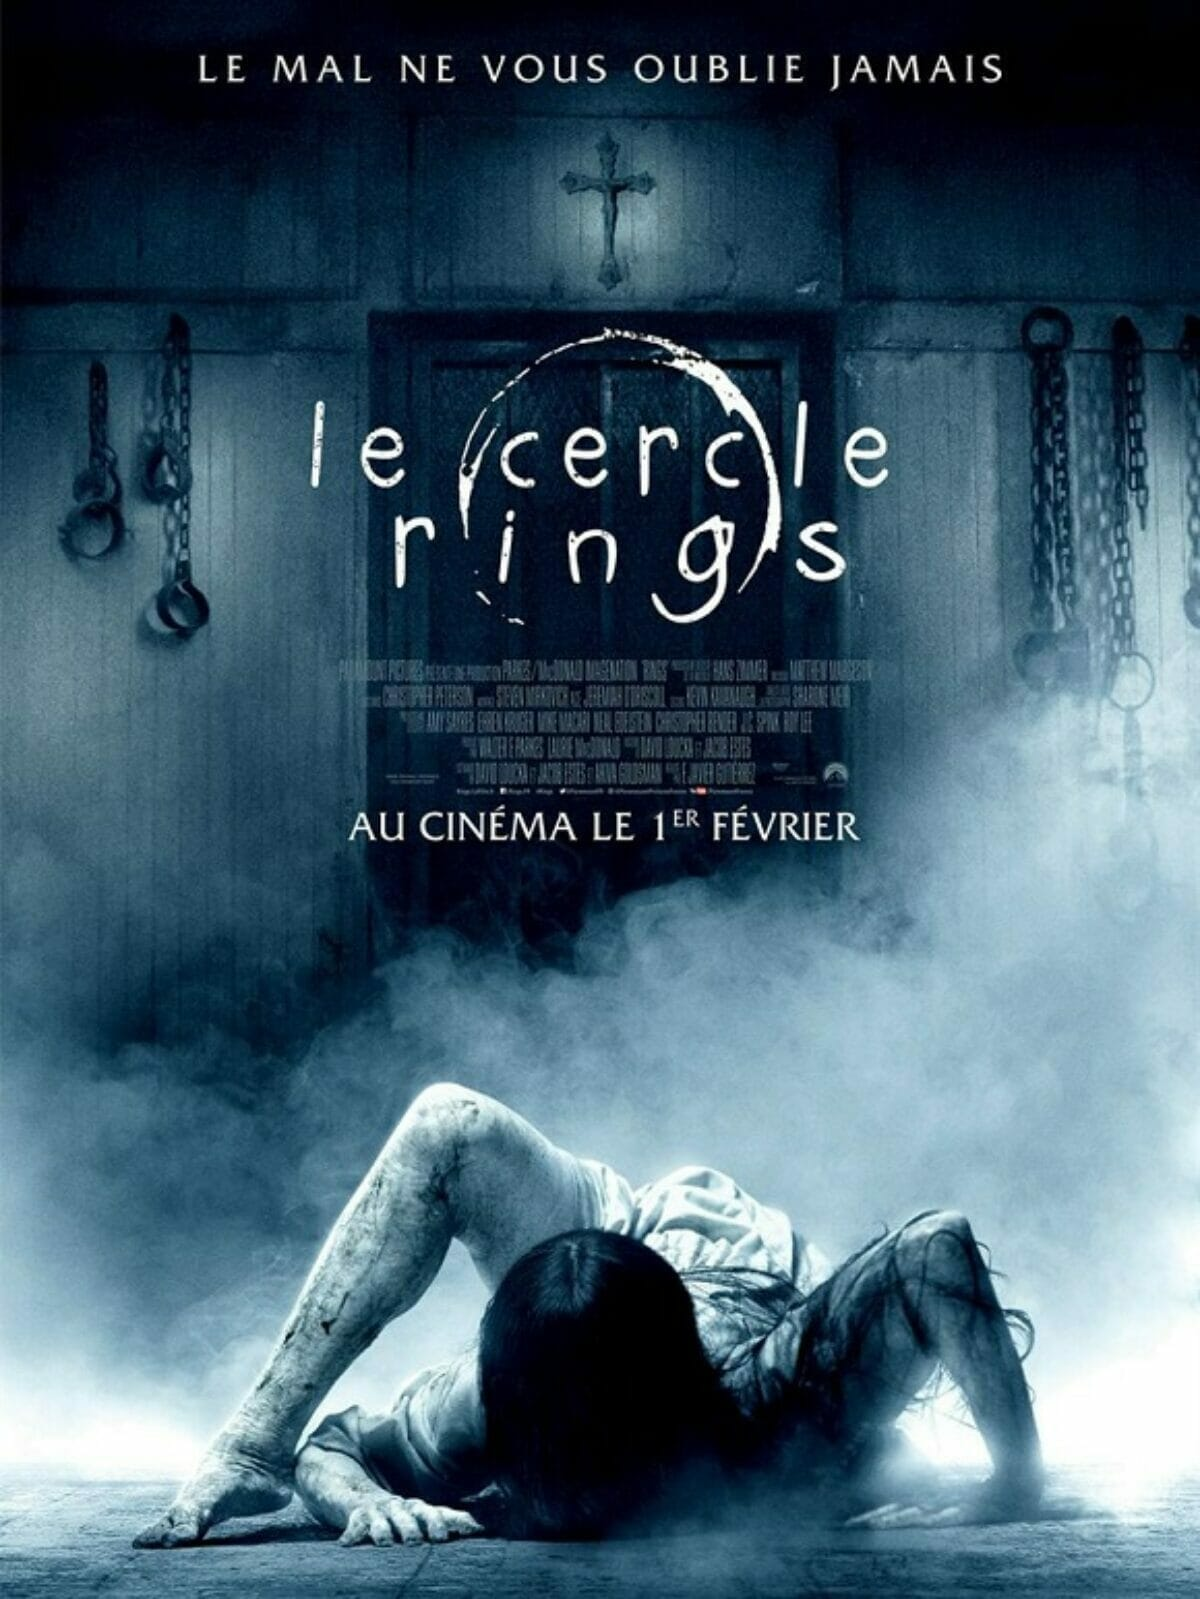 Le-cercle-rings-poster